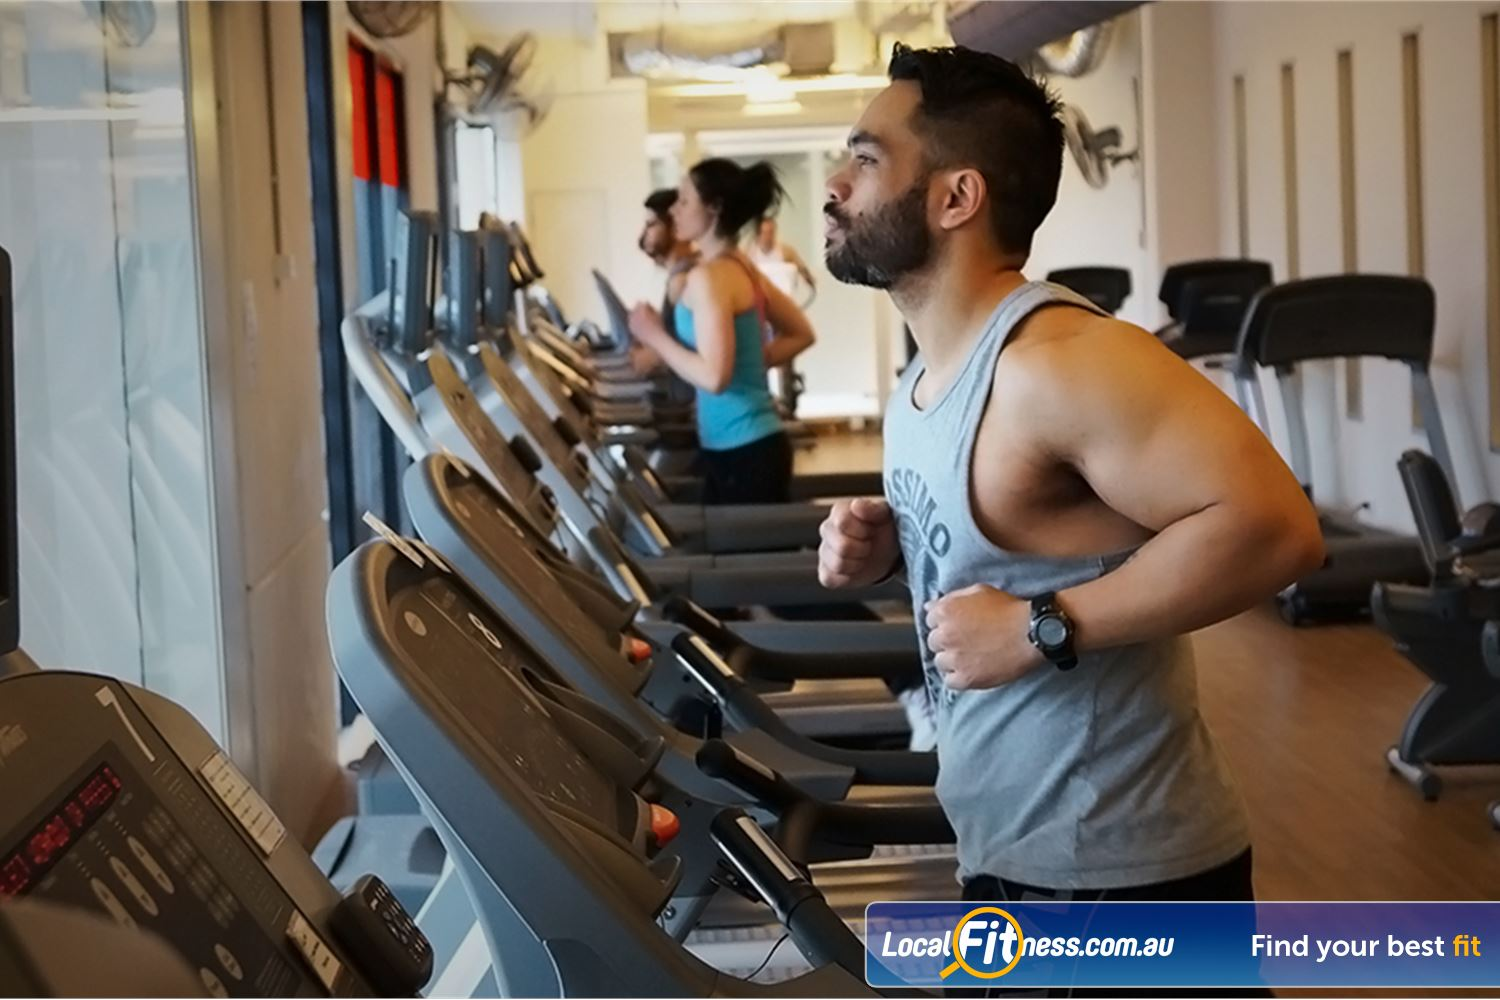 Goodlife Health Clubs Near Middle Park Enjoy our cardio with views overlooking the South Melbourne streets.